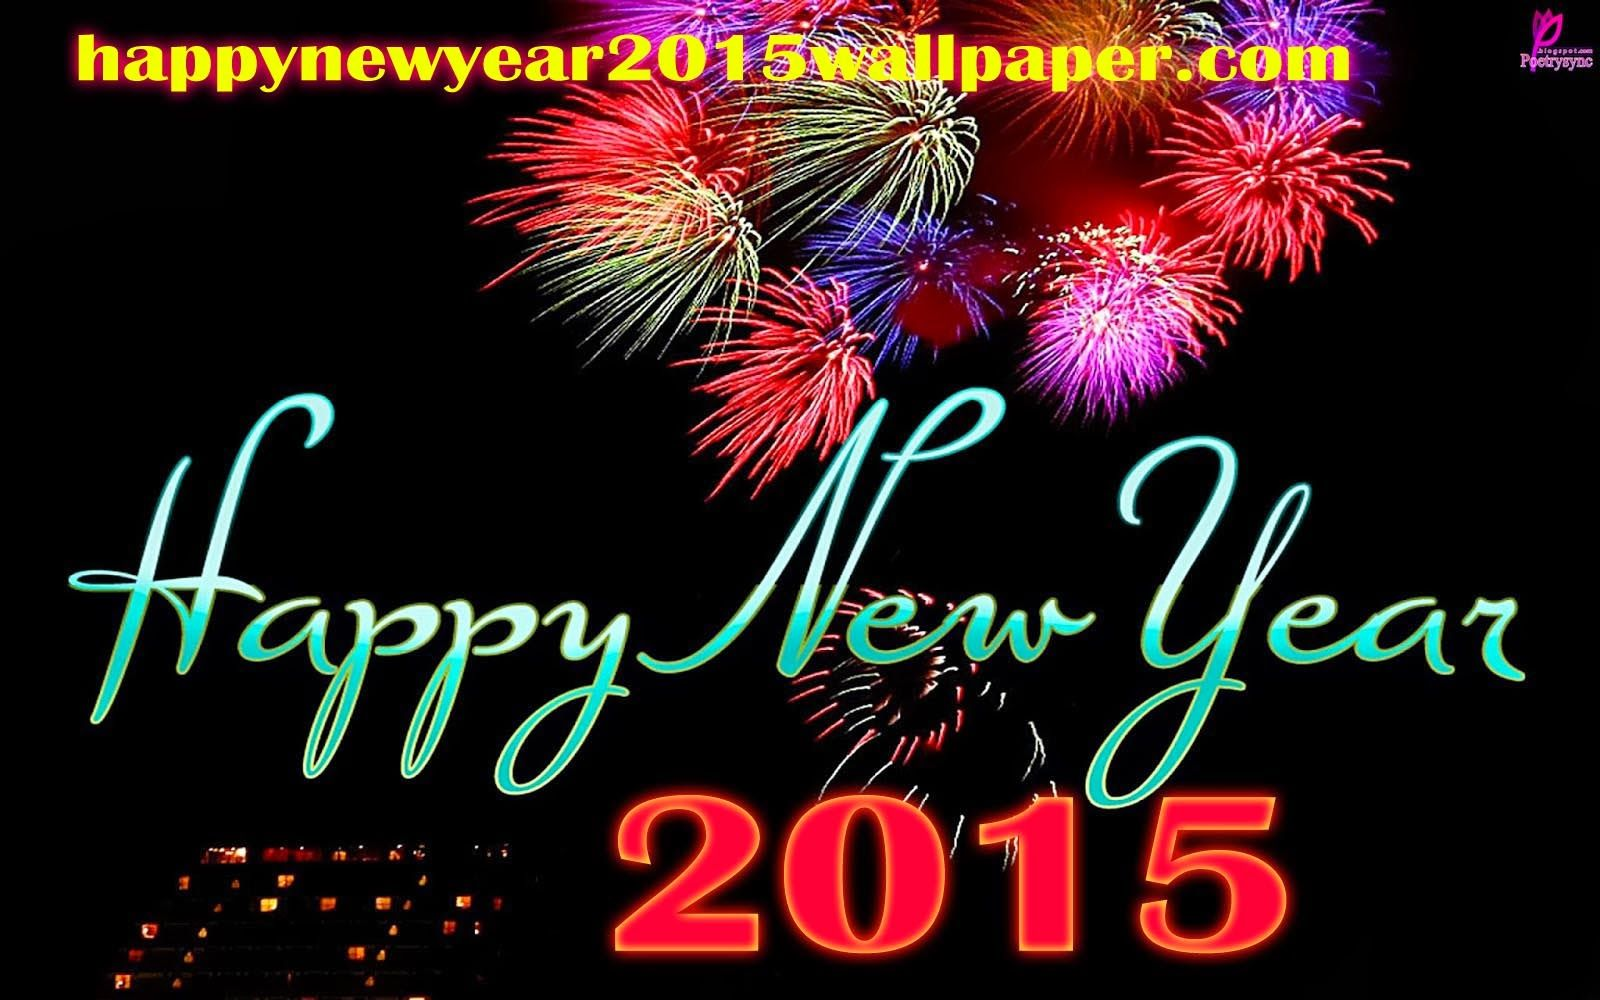 Beautiful Happy New Year 2015 Wallpaper For Greetings New Year